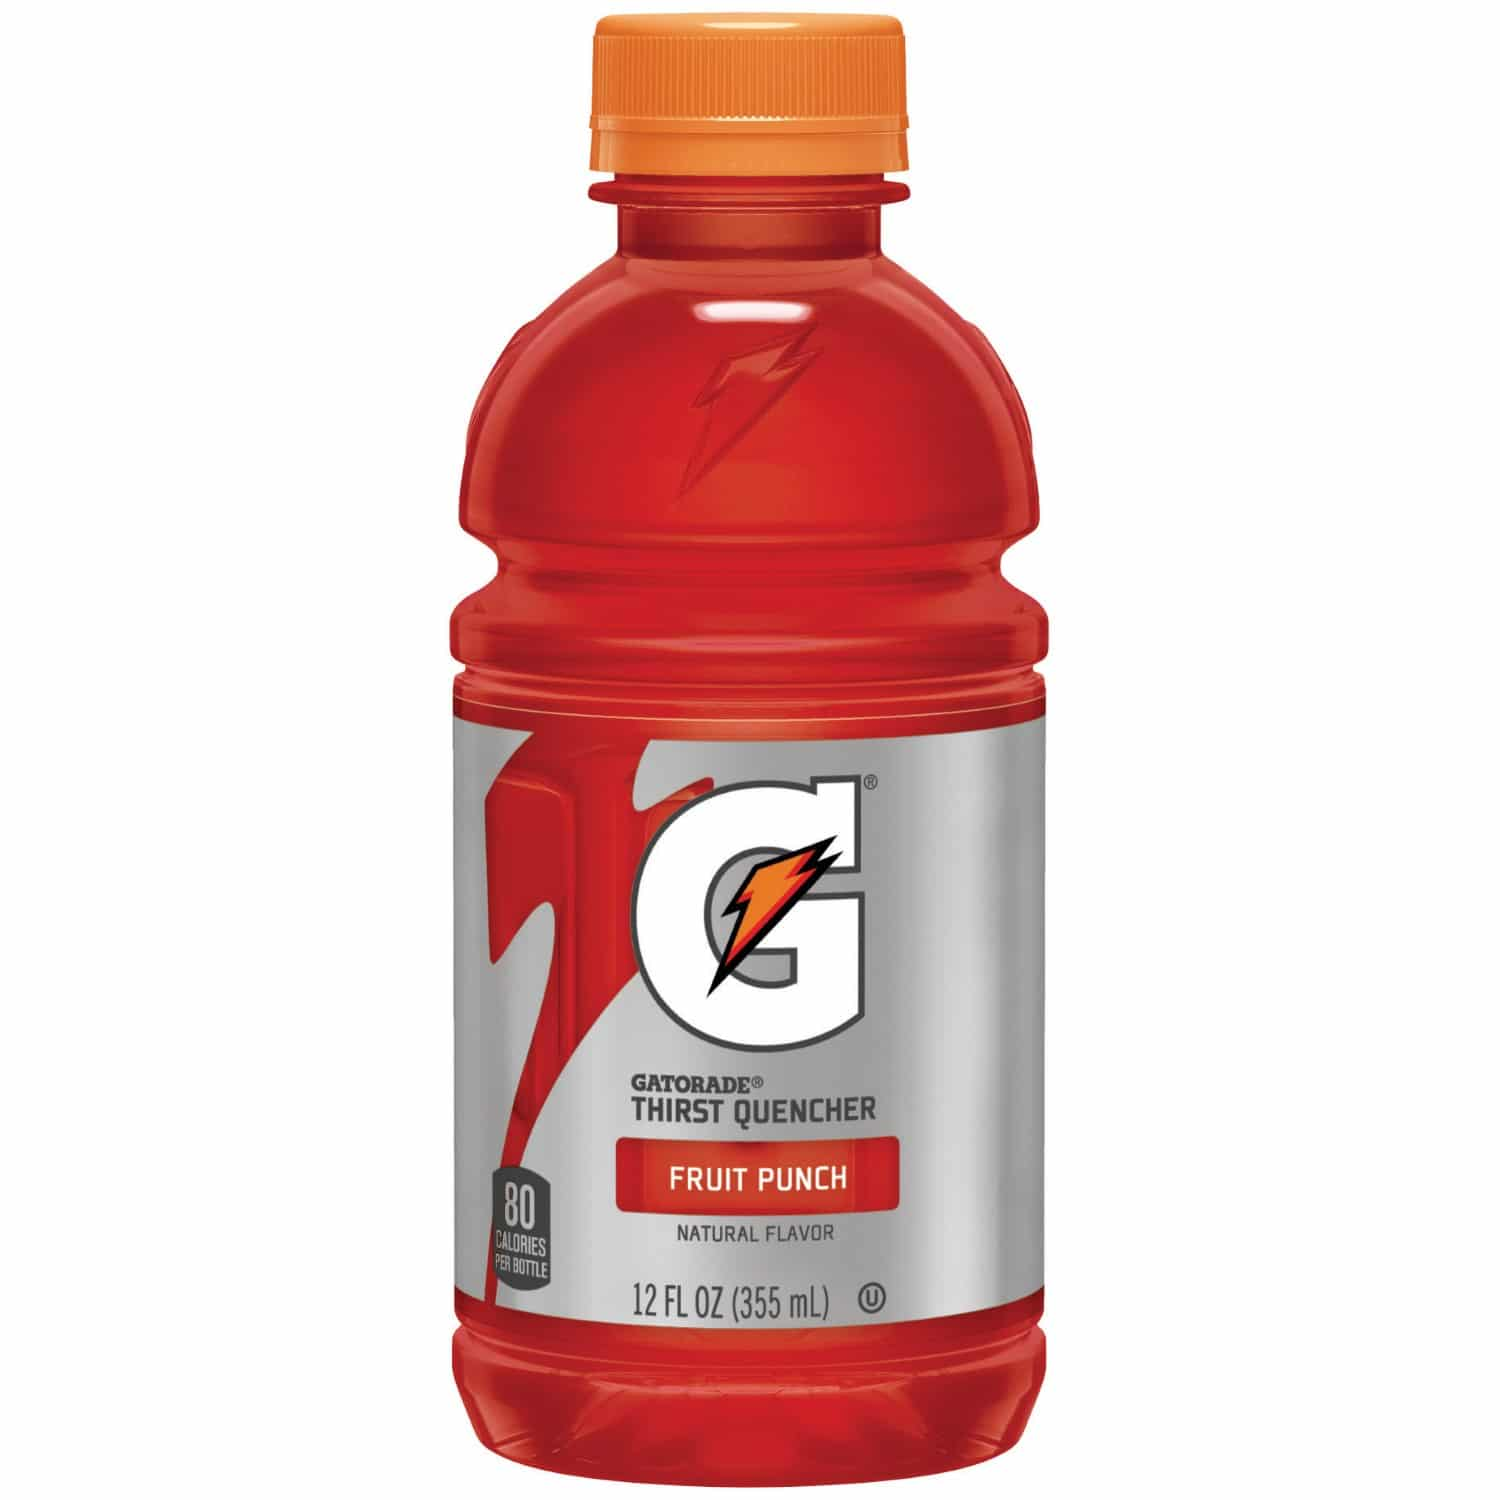 All Stars Thirst Quencher Fruit Punch Beverage From